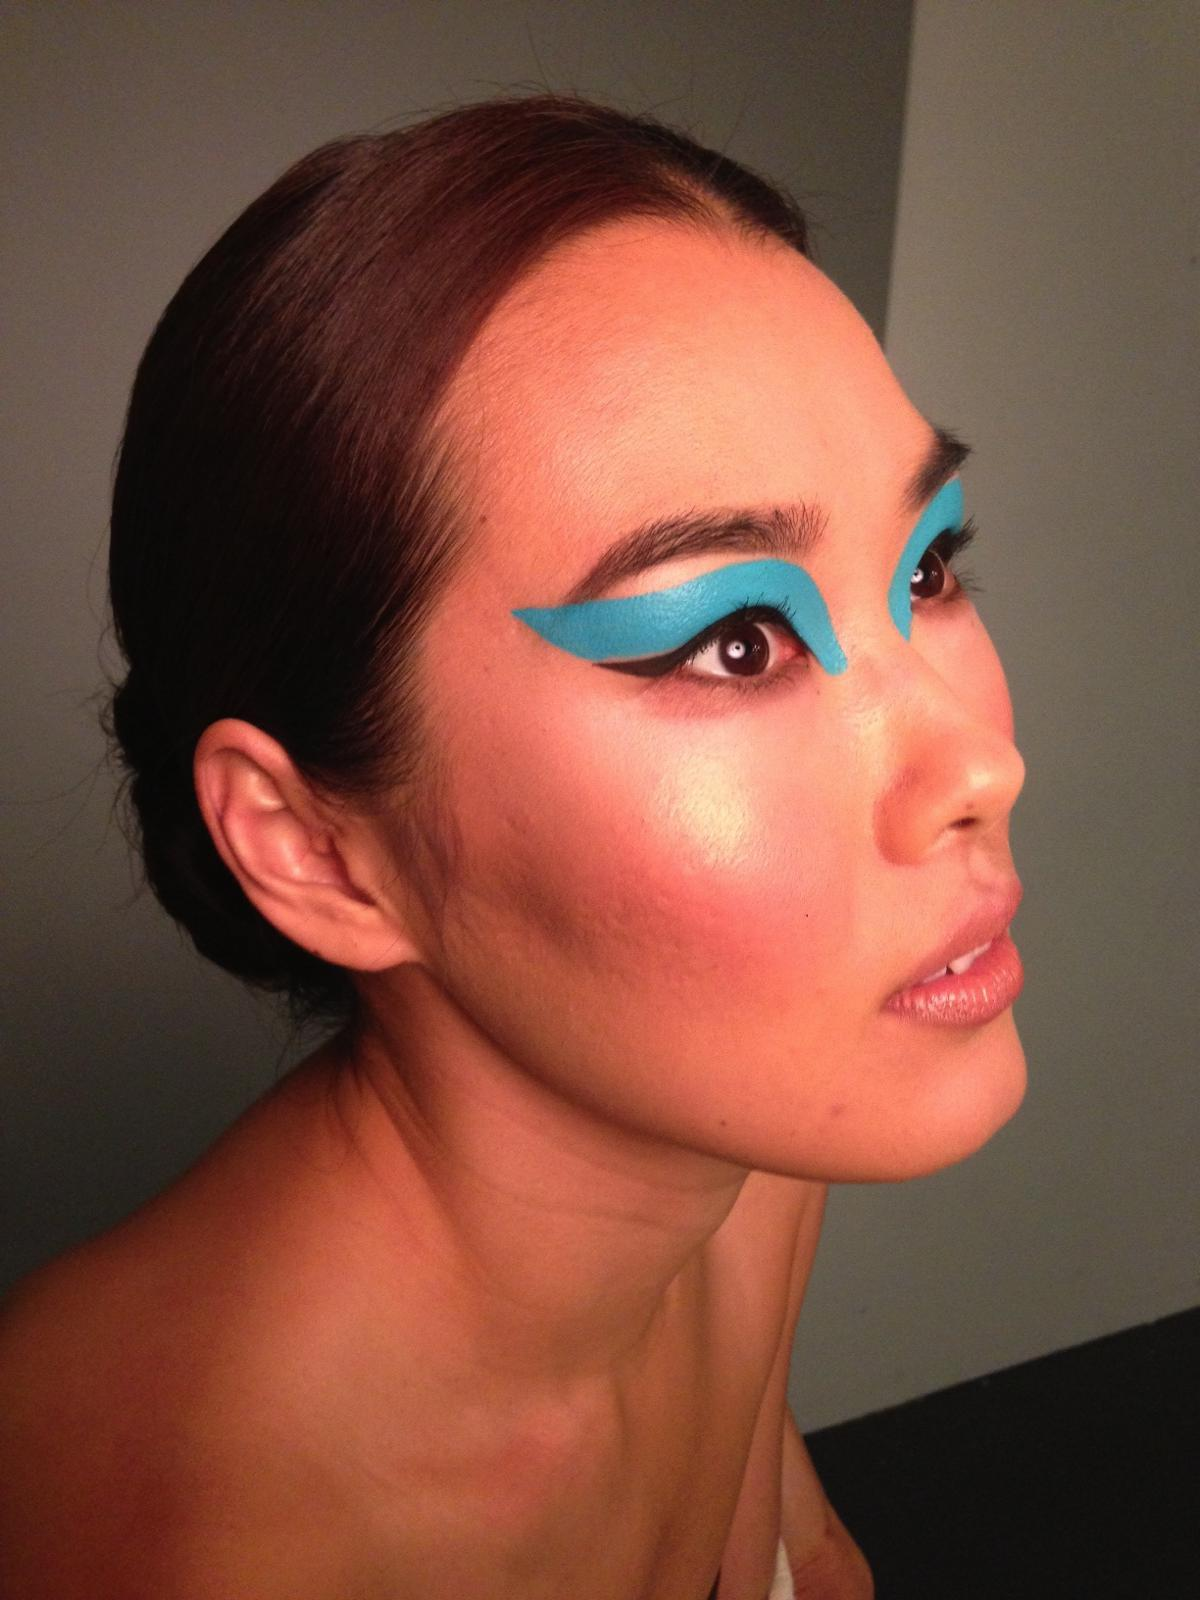 Teal Eye Makeup BTS